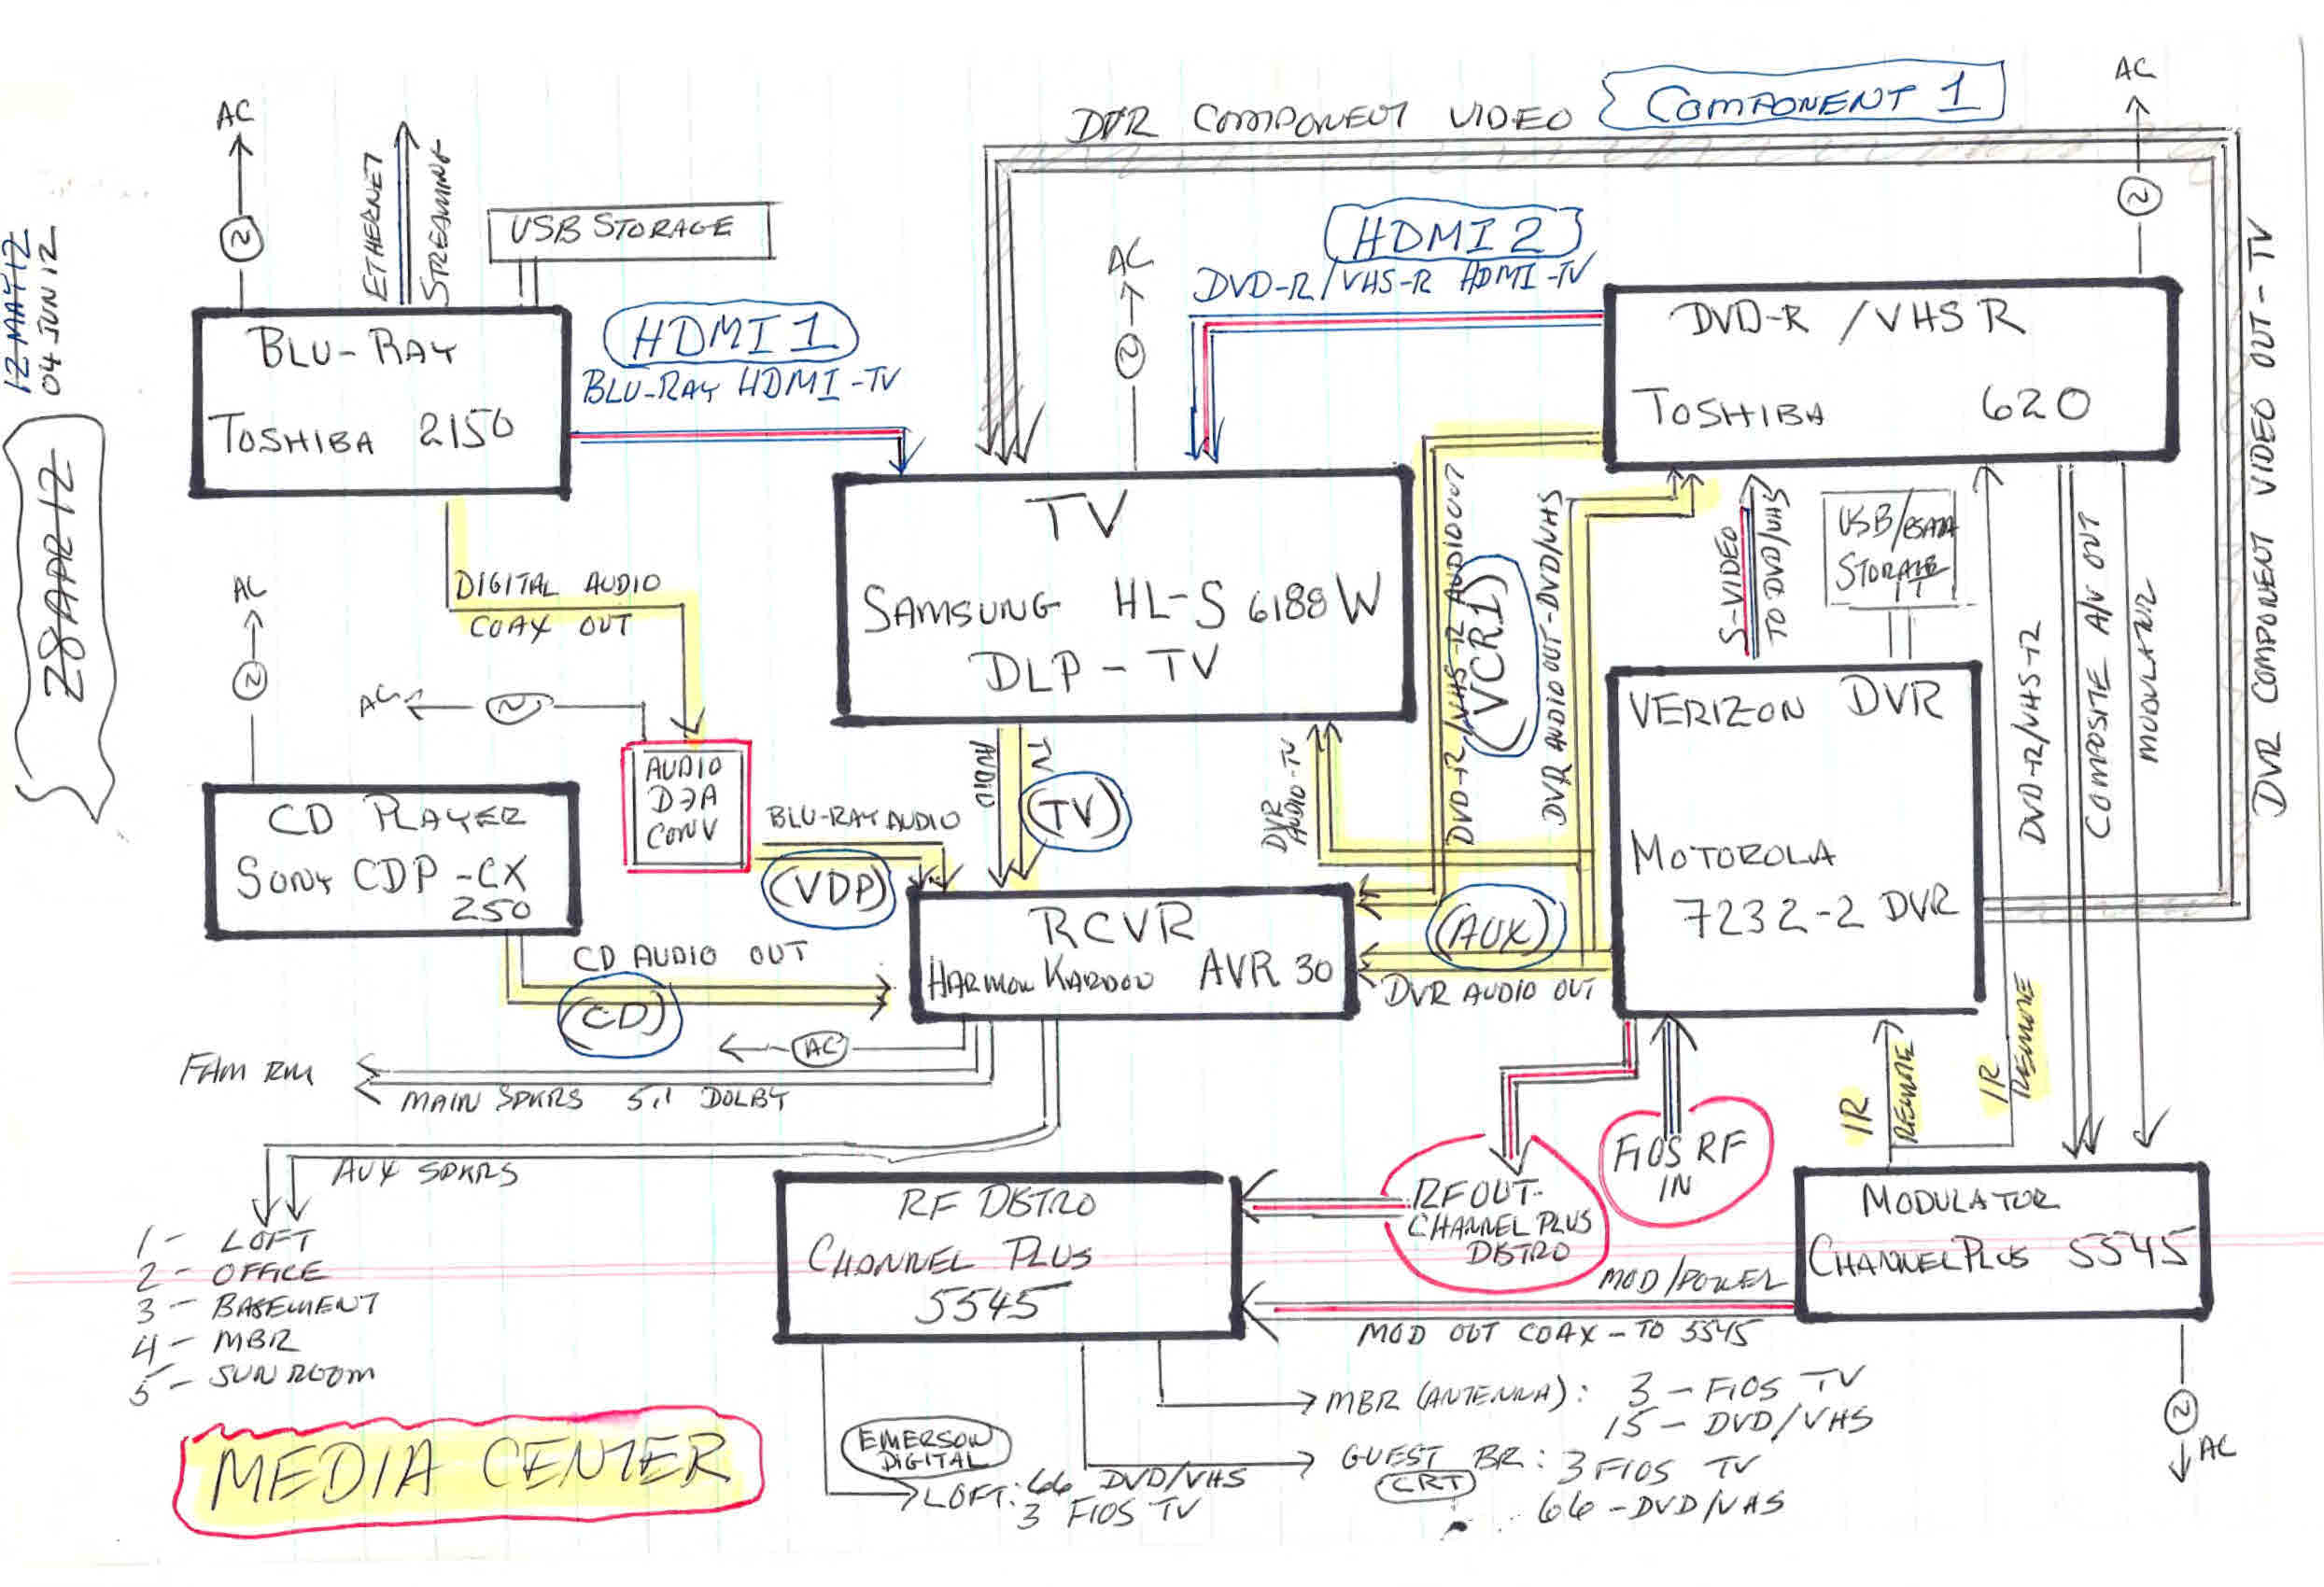 small resolution of fios wiring diagram wiring schematic data motorola cable box wiring fios tv wiring diagram wiring schematic